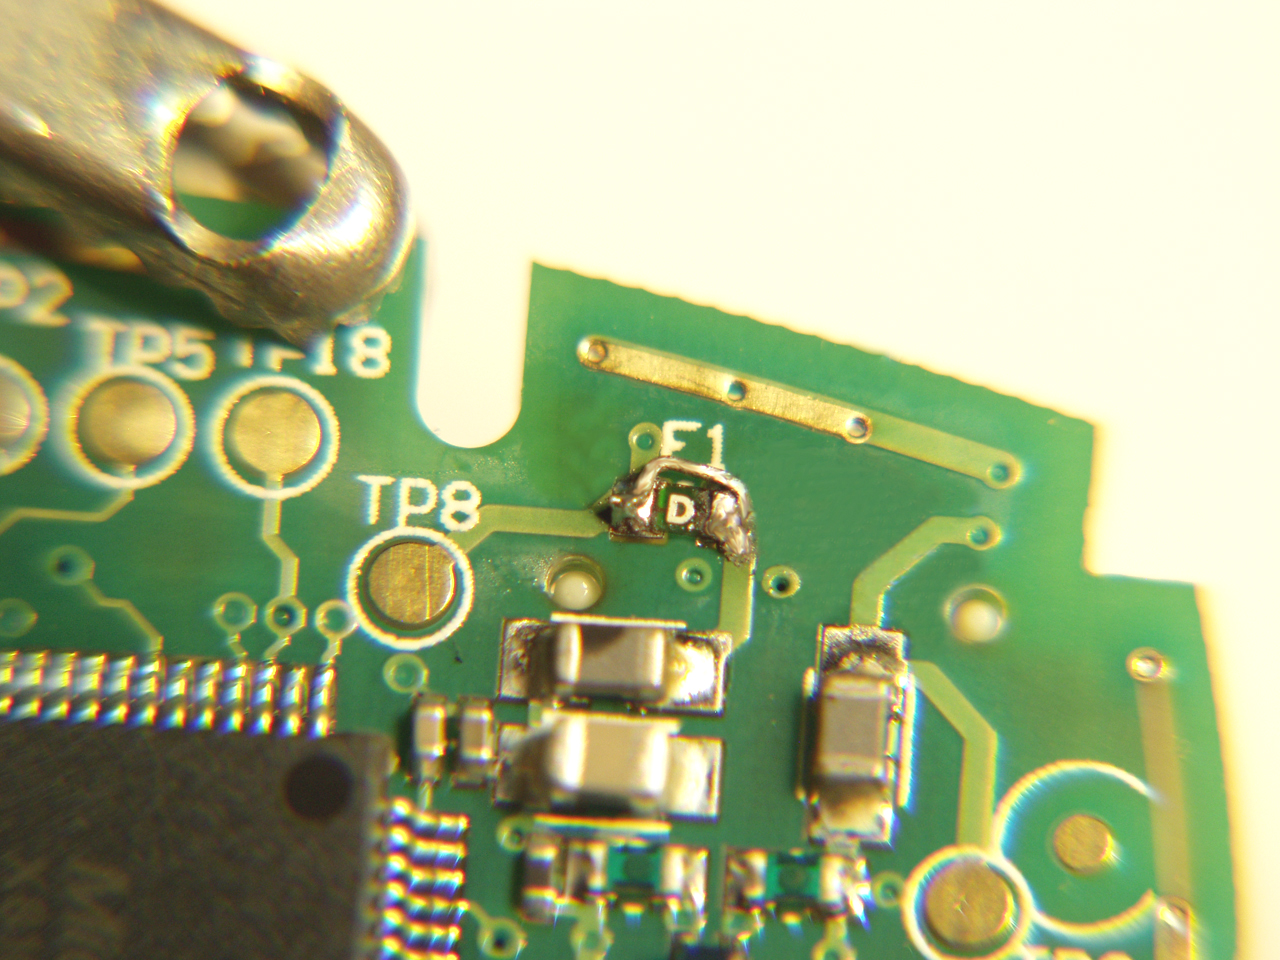 hight resolution of how to repair microsoft xbox 360 wireless gaming receiver forxbox 360 power supply fuse location